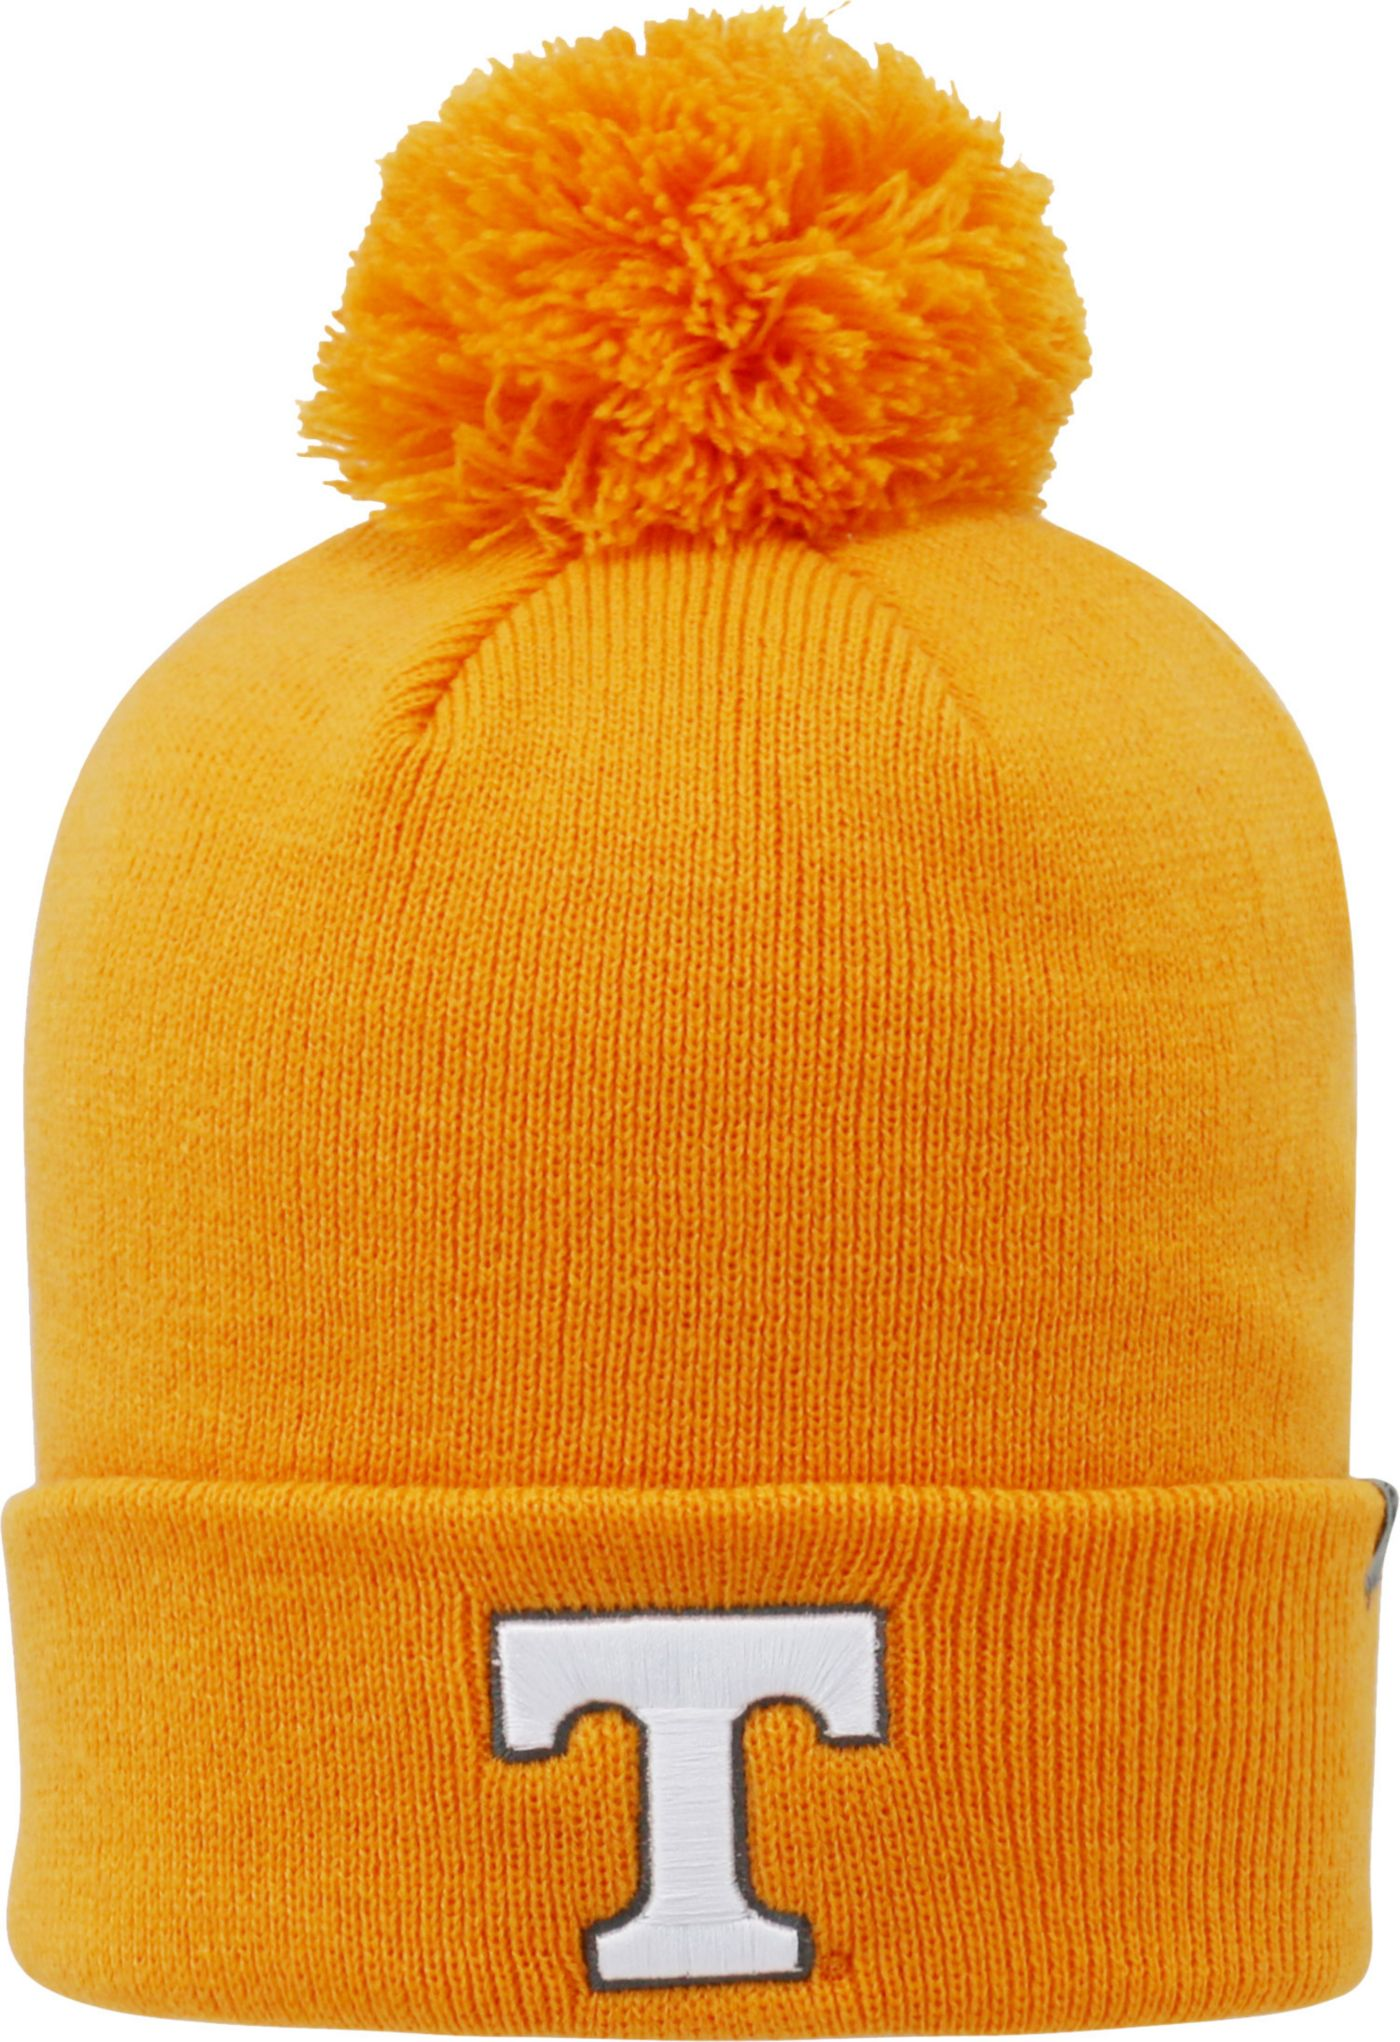 Top of the World Men's Tennessee Volunteers Tennessee Orange Pom Knit Beanie